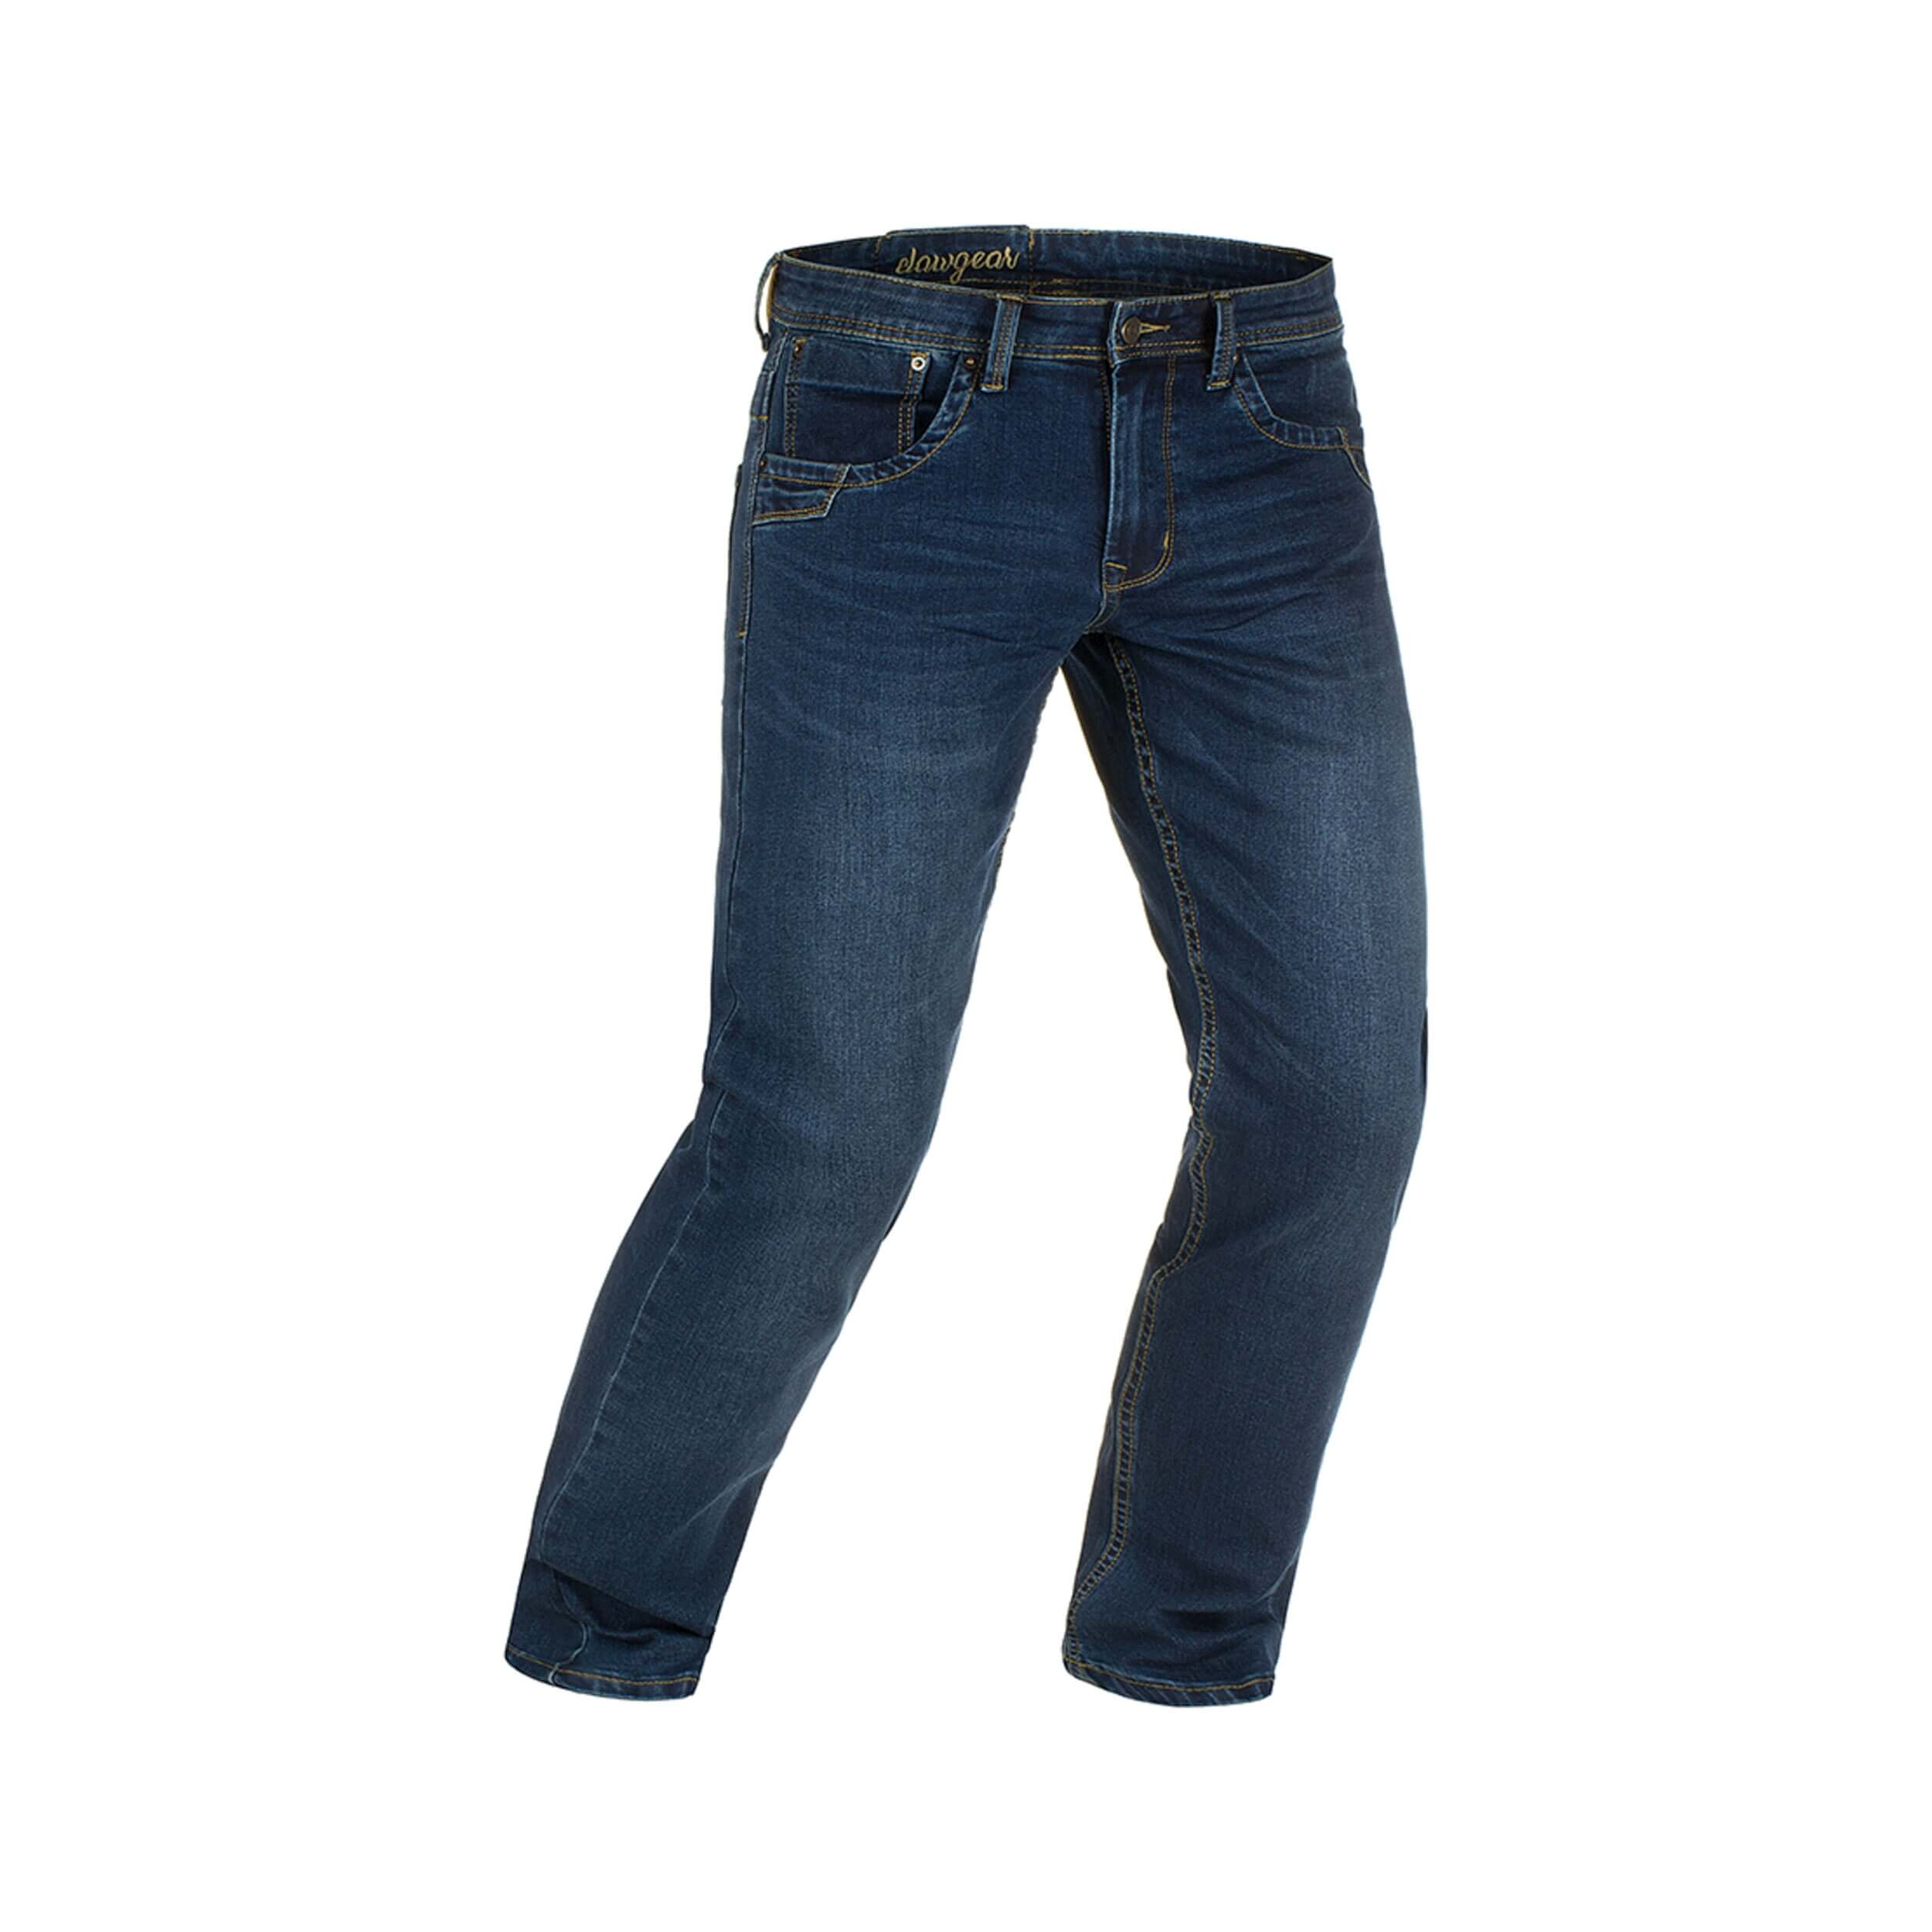 Clawgear Blue Denim Tactical Flex Jeans Washed Sapphire